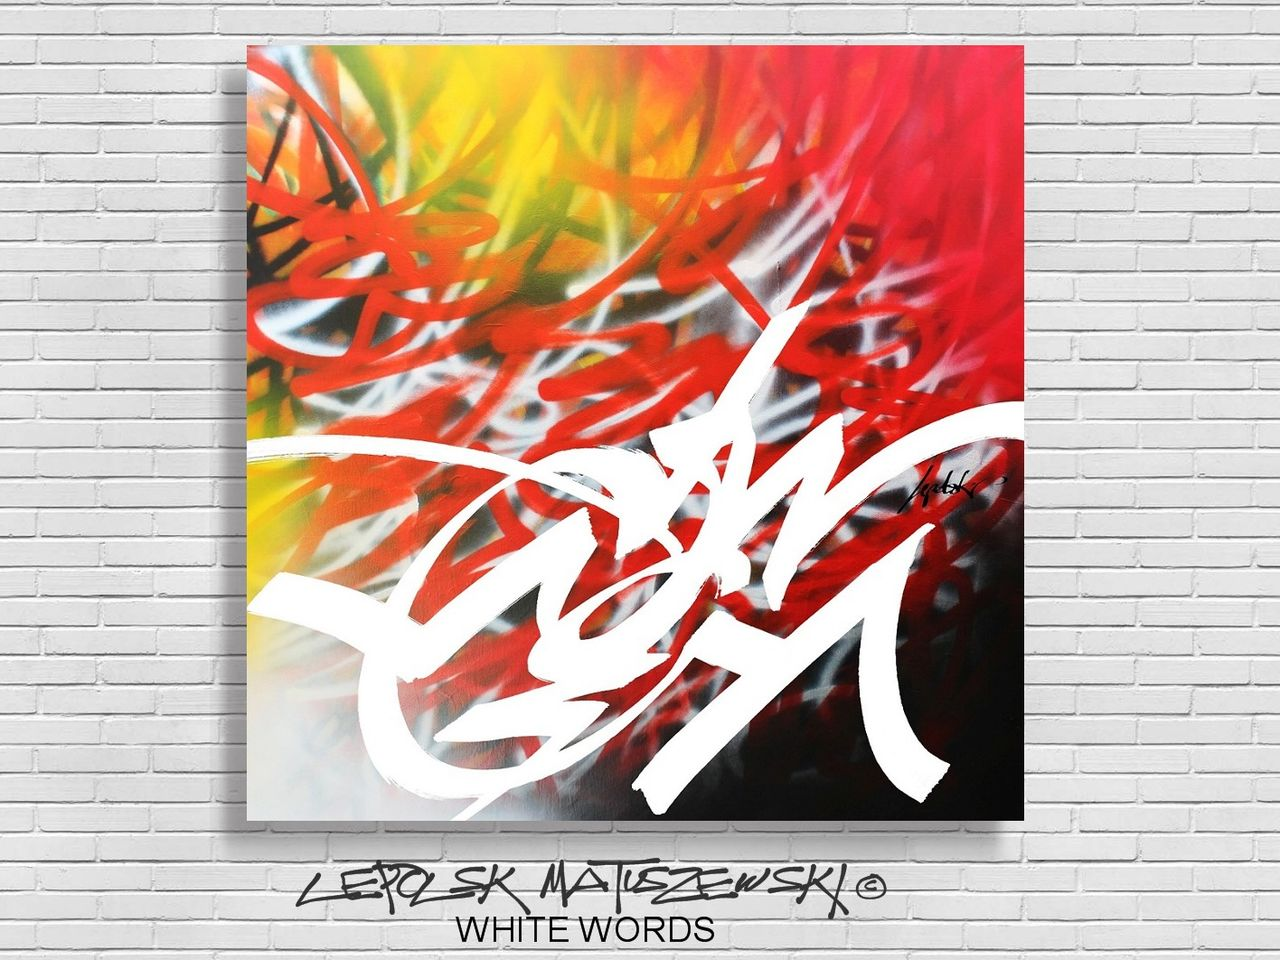 LEPOLSK MATUSZEWSKI WHITE WORDS lepolsk 2016 abstract graffiti